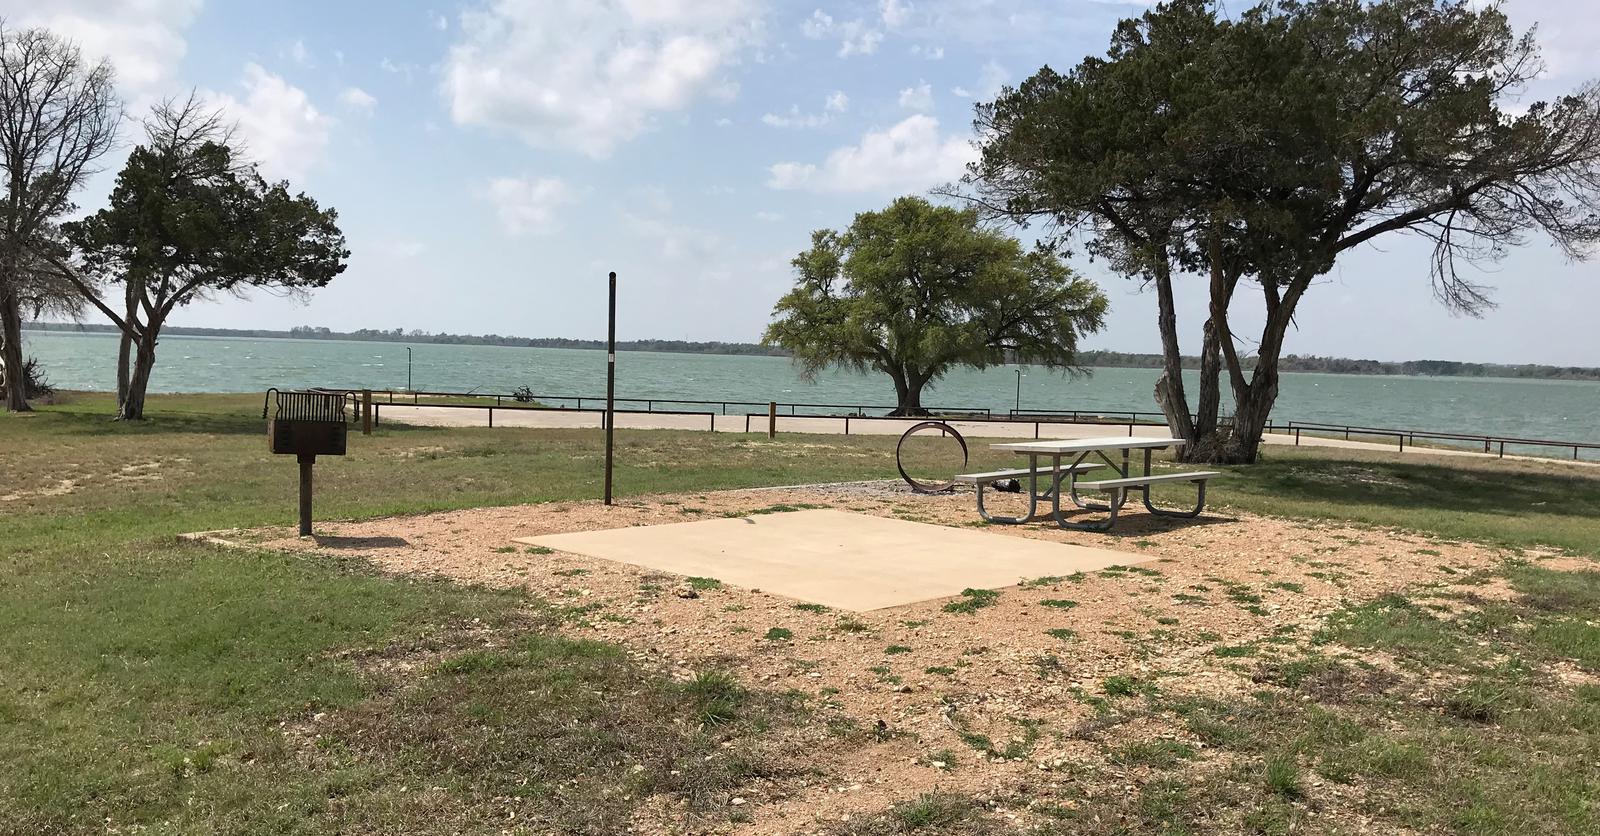 Tent site with picnic table, grill, fire ring, and Waco Lake in the background